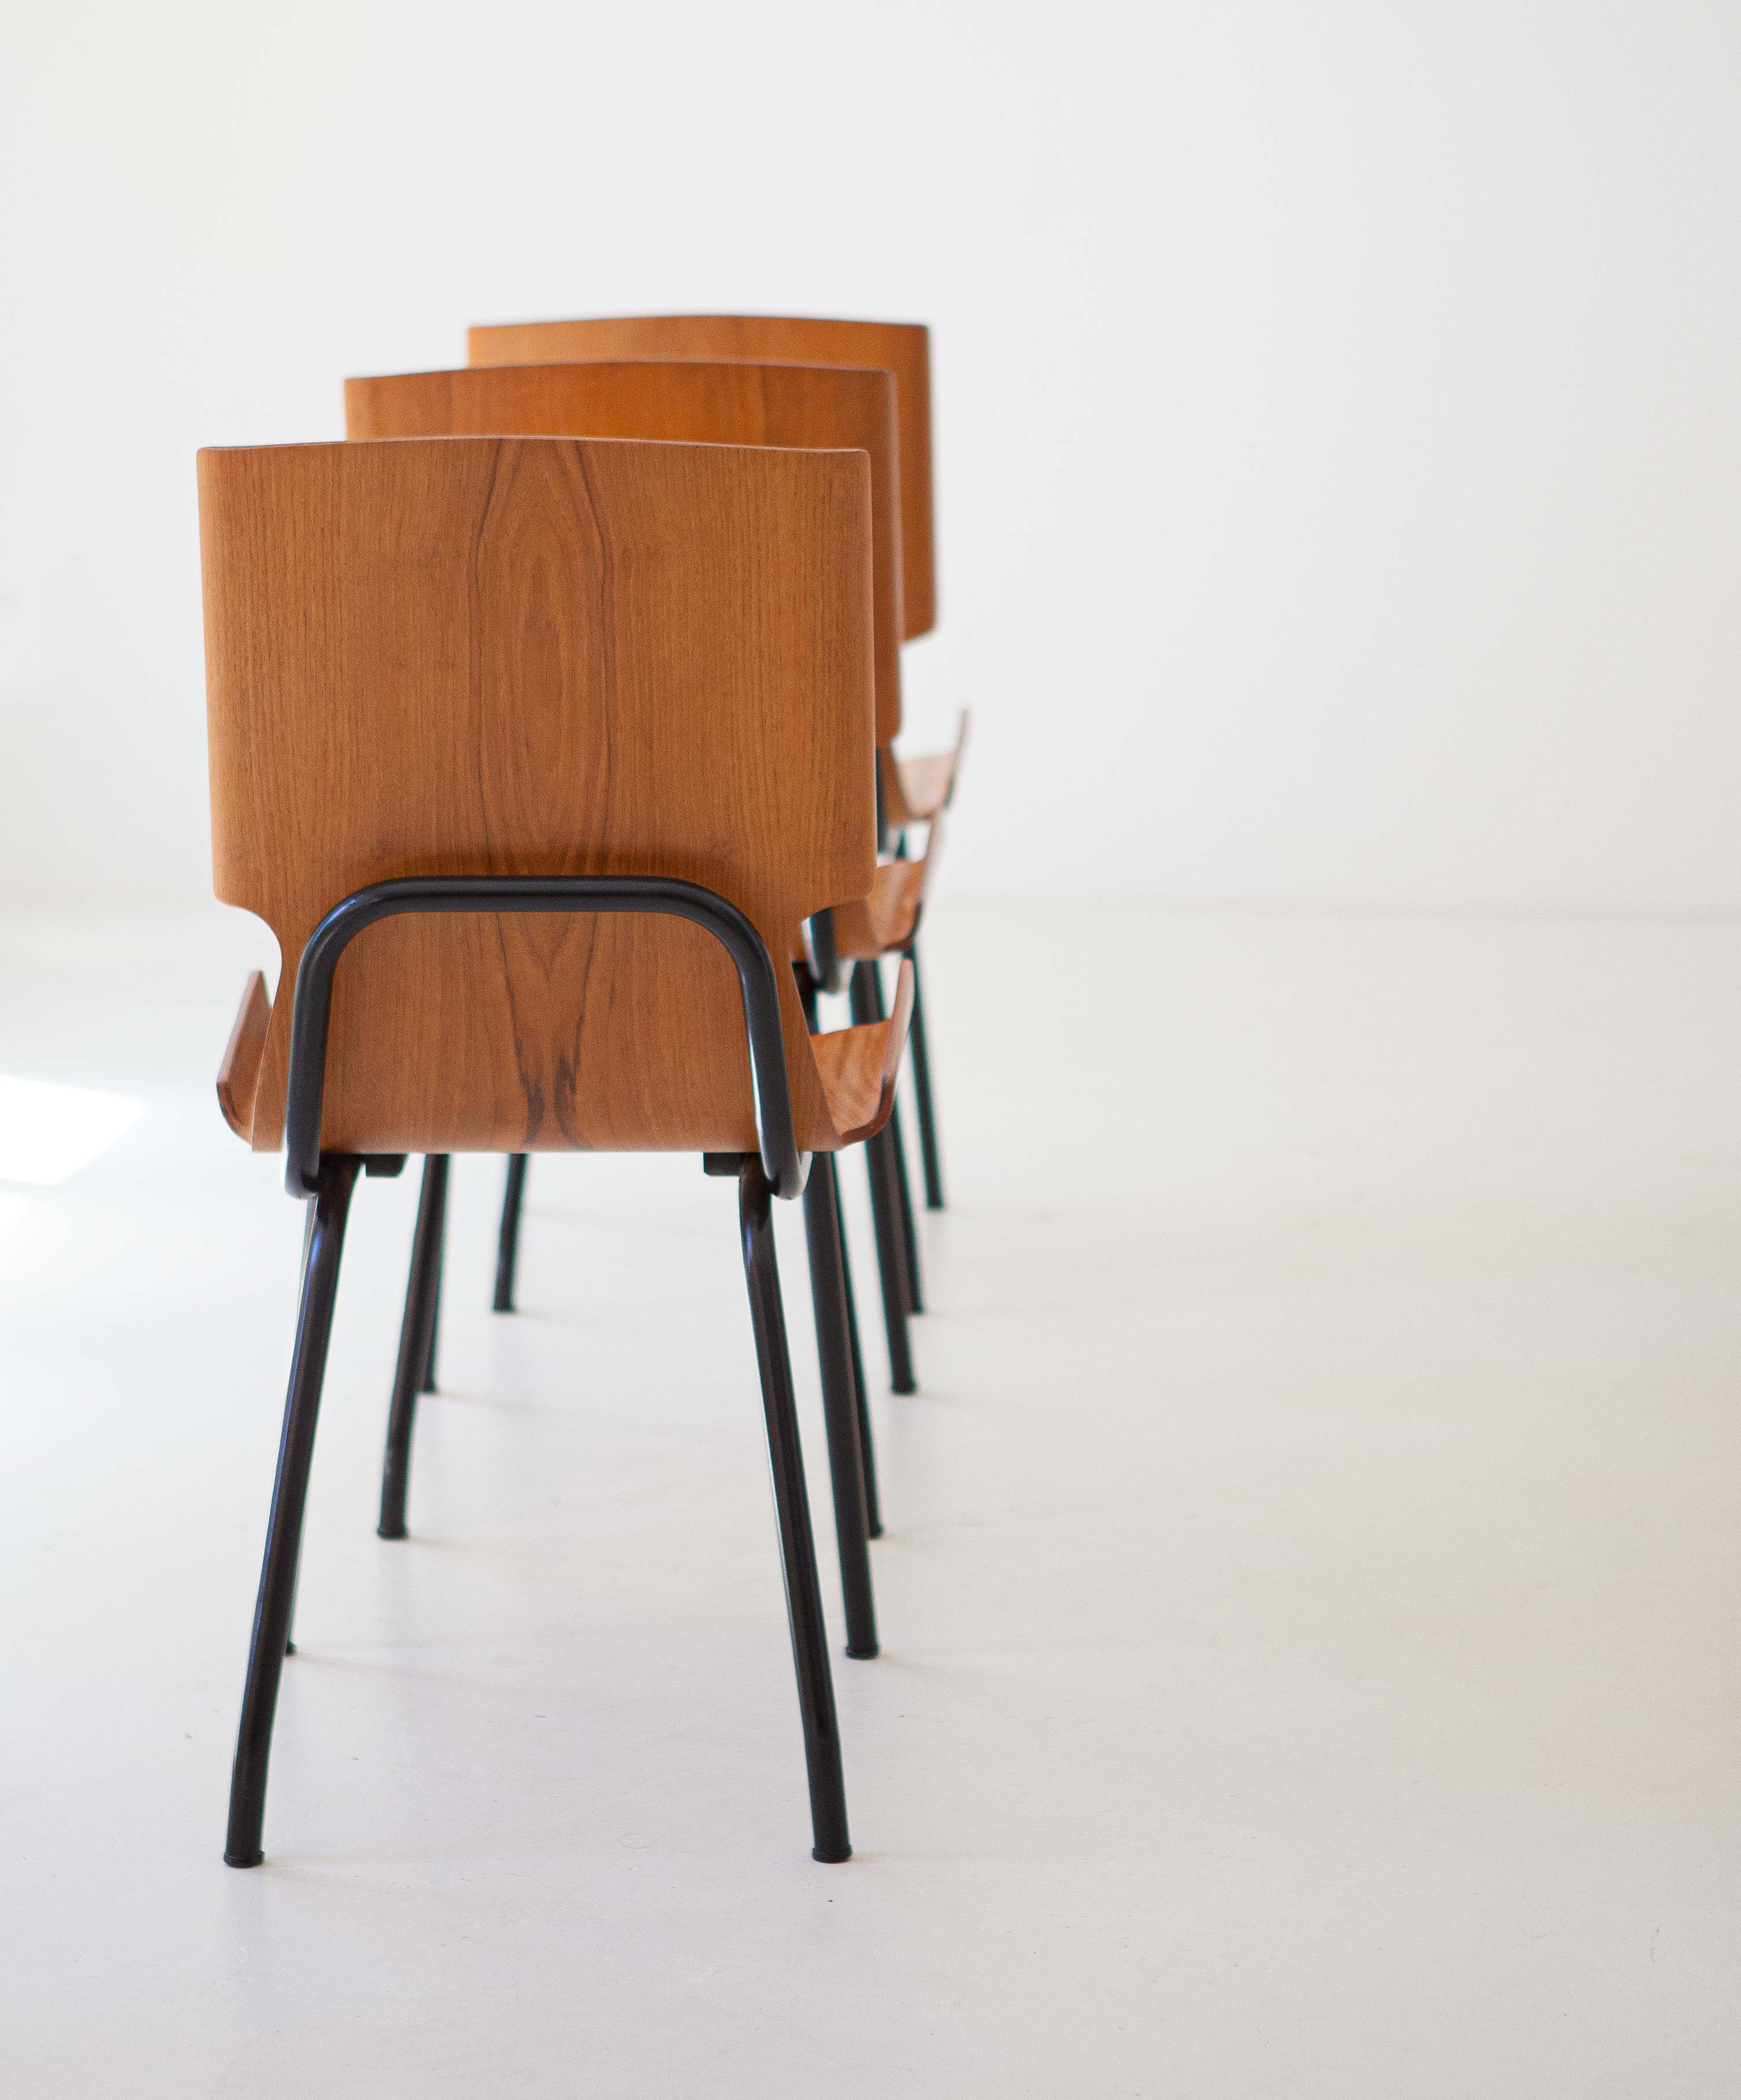 1950s-set-of-six-curved-teak-chairs-by-carlo-ratti-4-se311